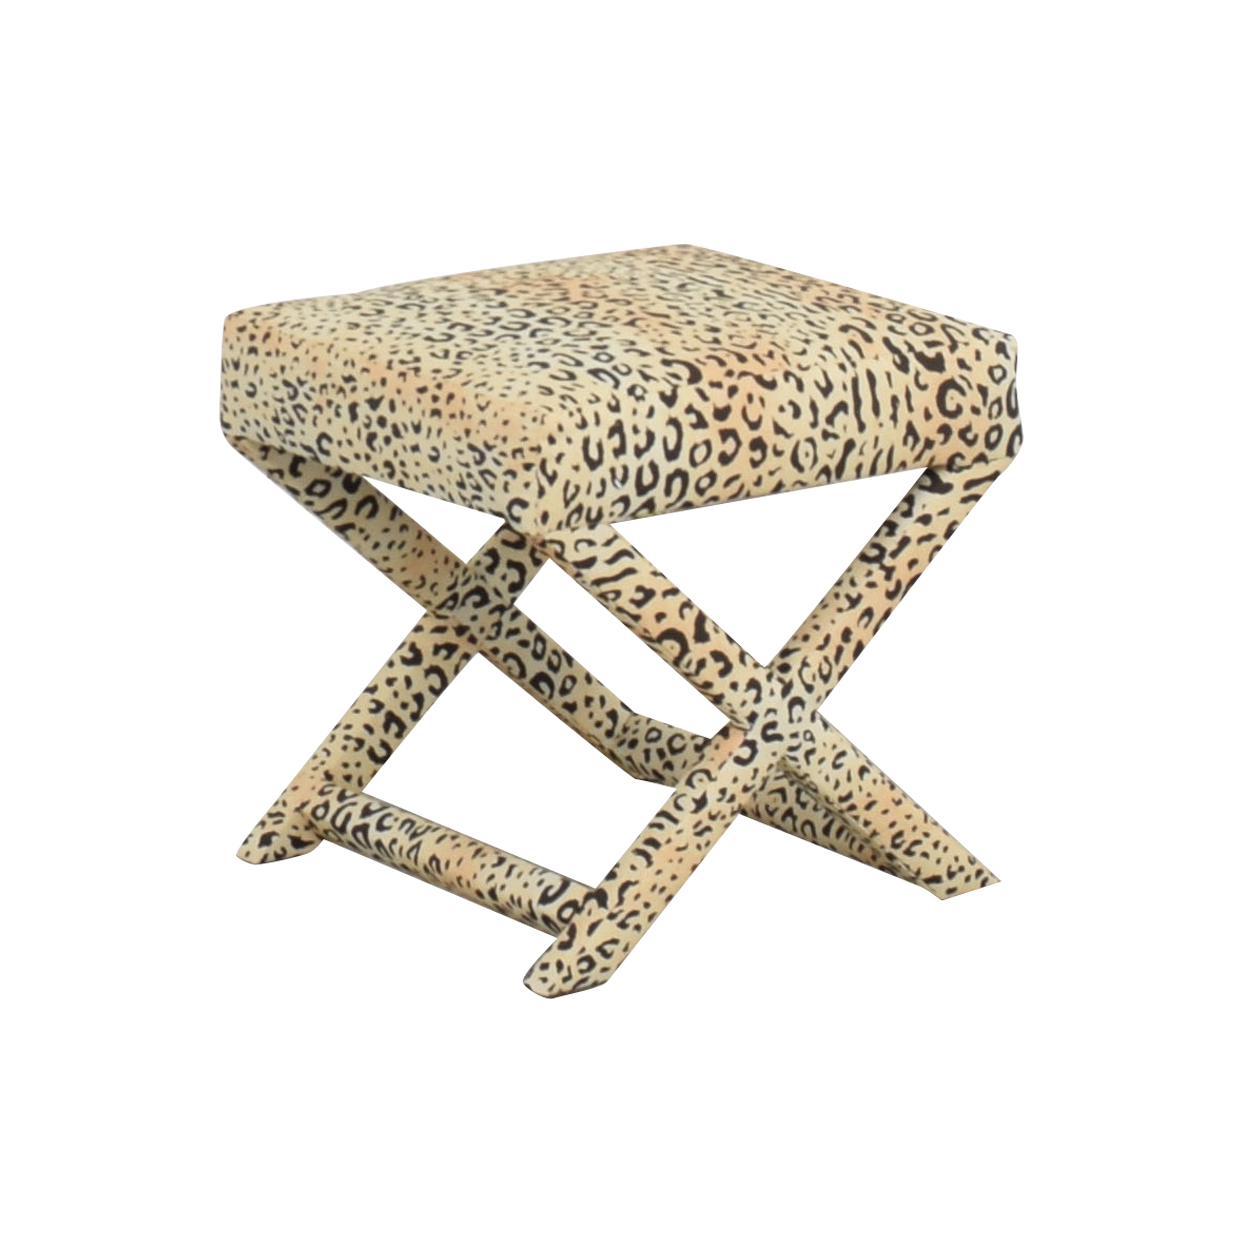 The Inside Ther Inside Leopard X-Bench dimensions